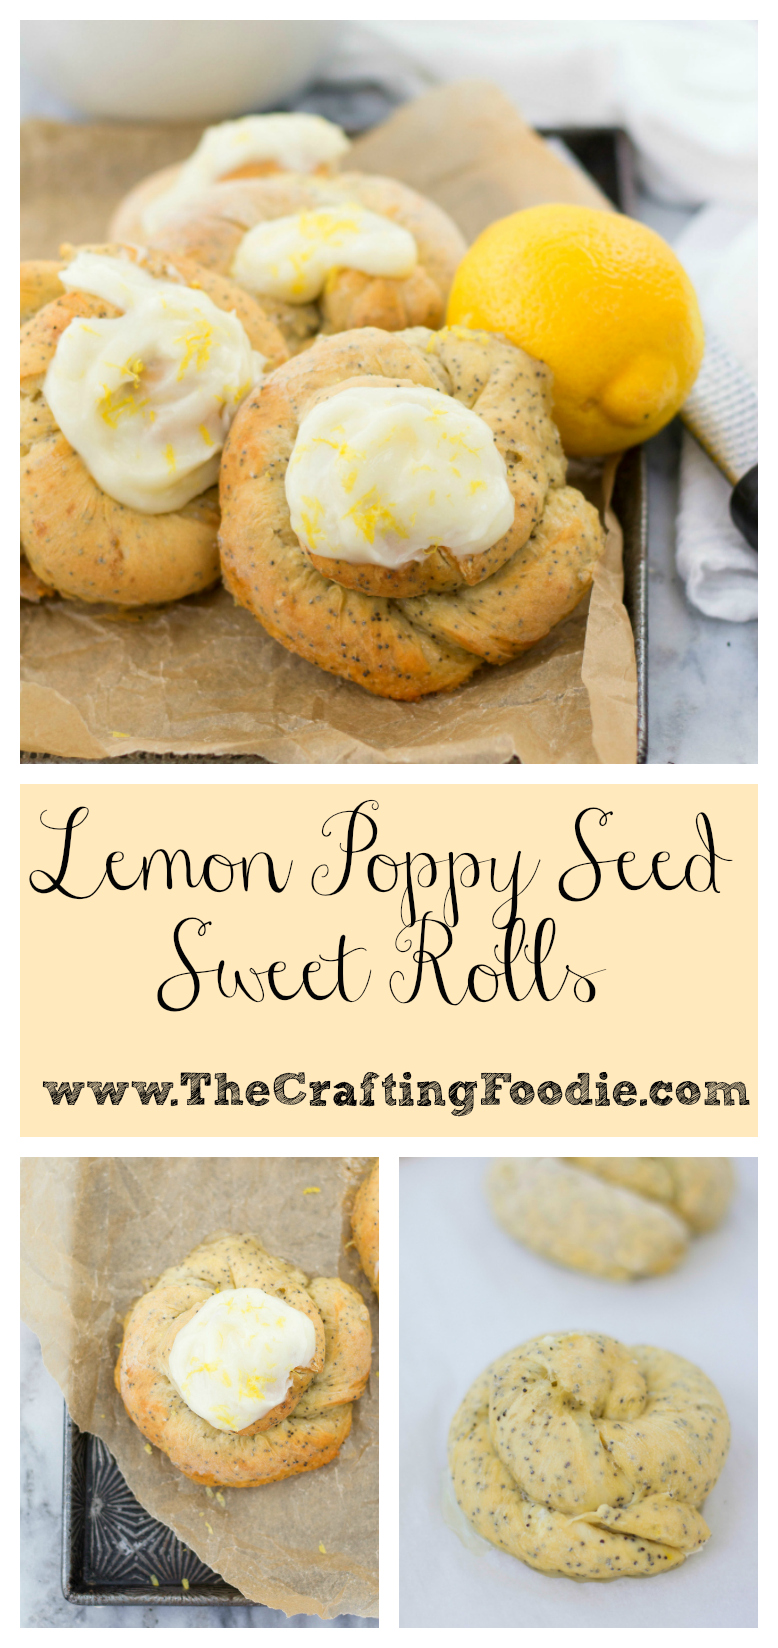 Lemon Poppy Seed Sweet Rolls The Crafting Foodie